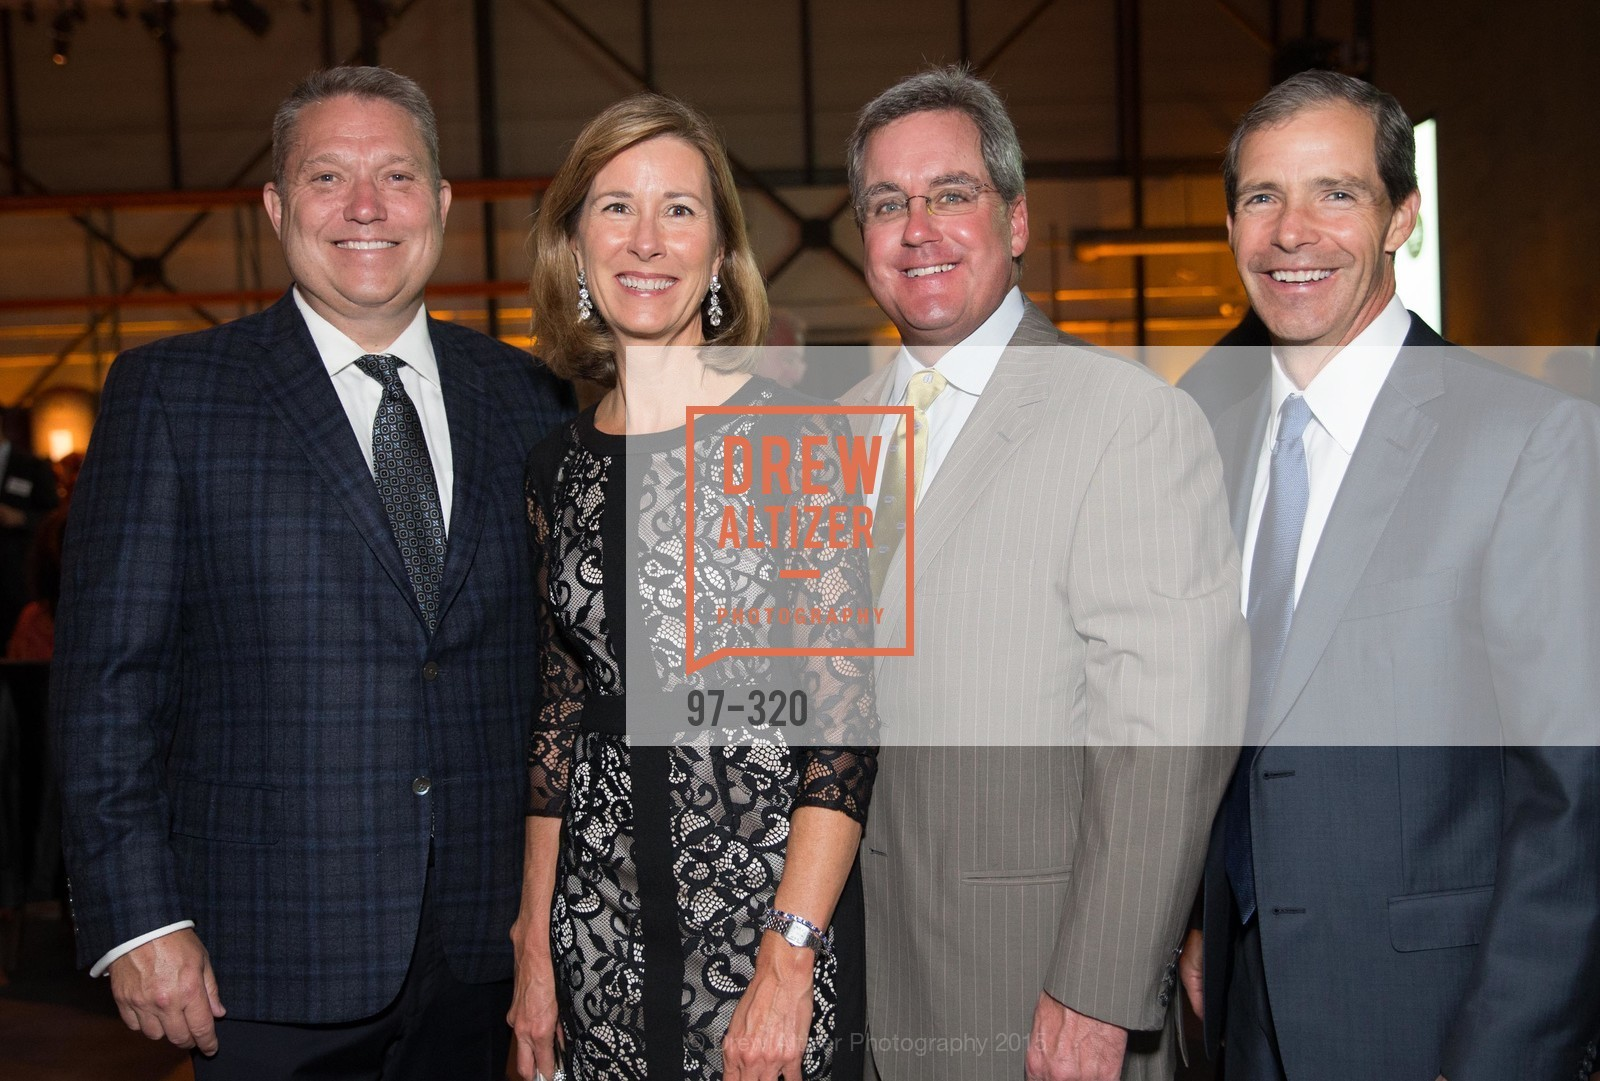 Gary Schermann, Anne Herrera, Dennis Herrera, Greg Flynn, SF - Marin Food Bank Presents ONE BIG TABLE, SF- Marin Food Bank. 900 Pennsylvania Ave, September 26th, 2015,Drew Altizer, Drew Altizer Photography, full-service event agency, private events, San Francisco photographer, photographer California